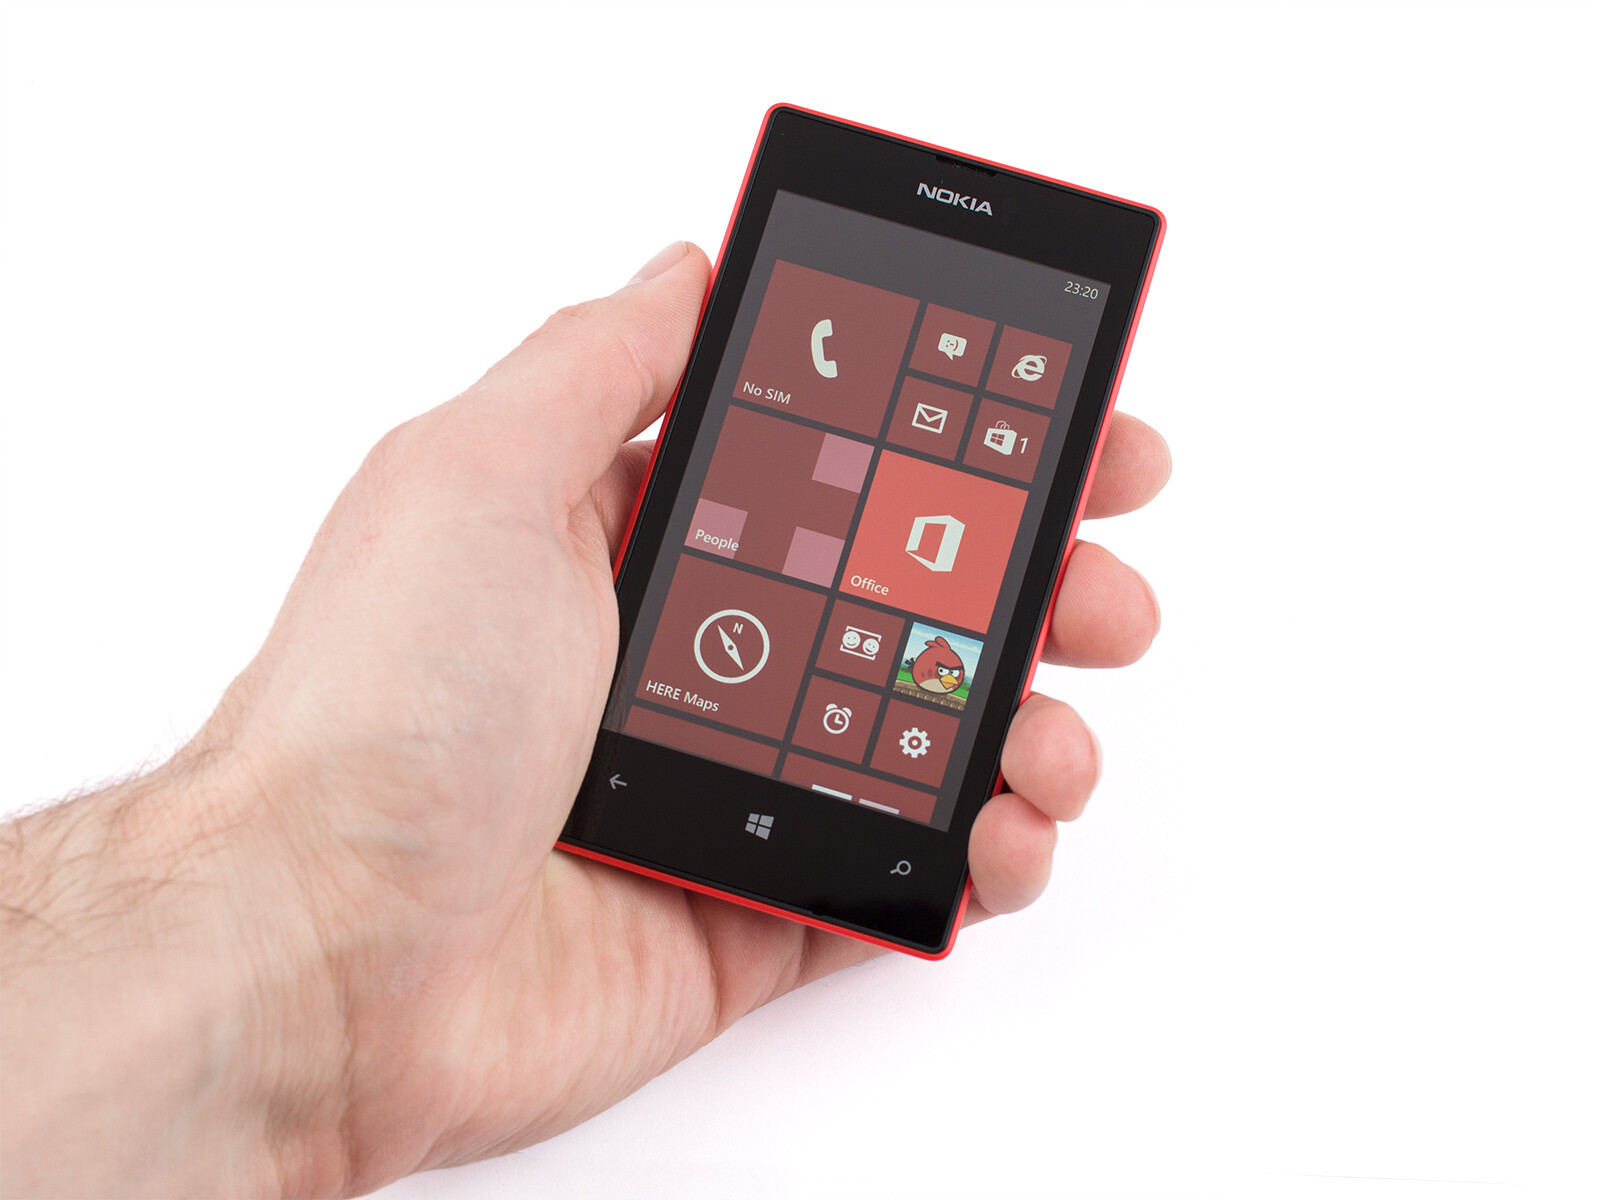 Remember the Nokia Lumia 520? For years it has been the ...